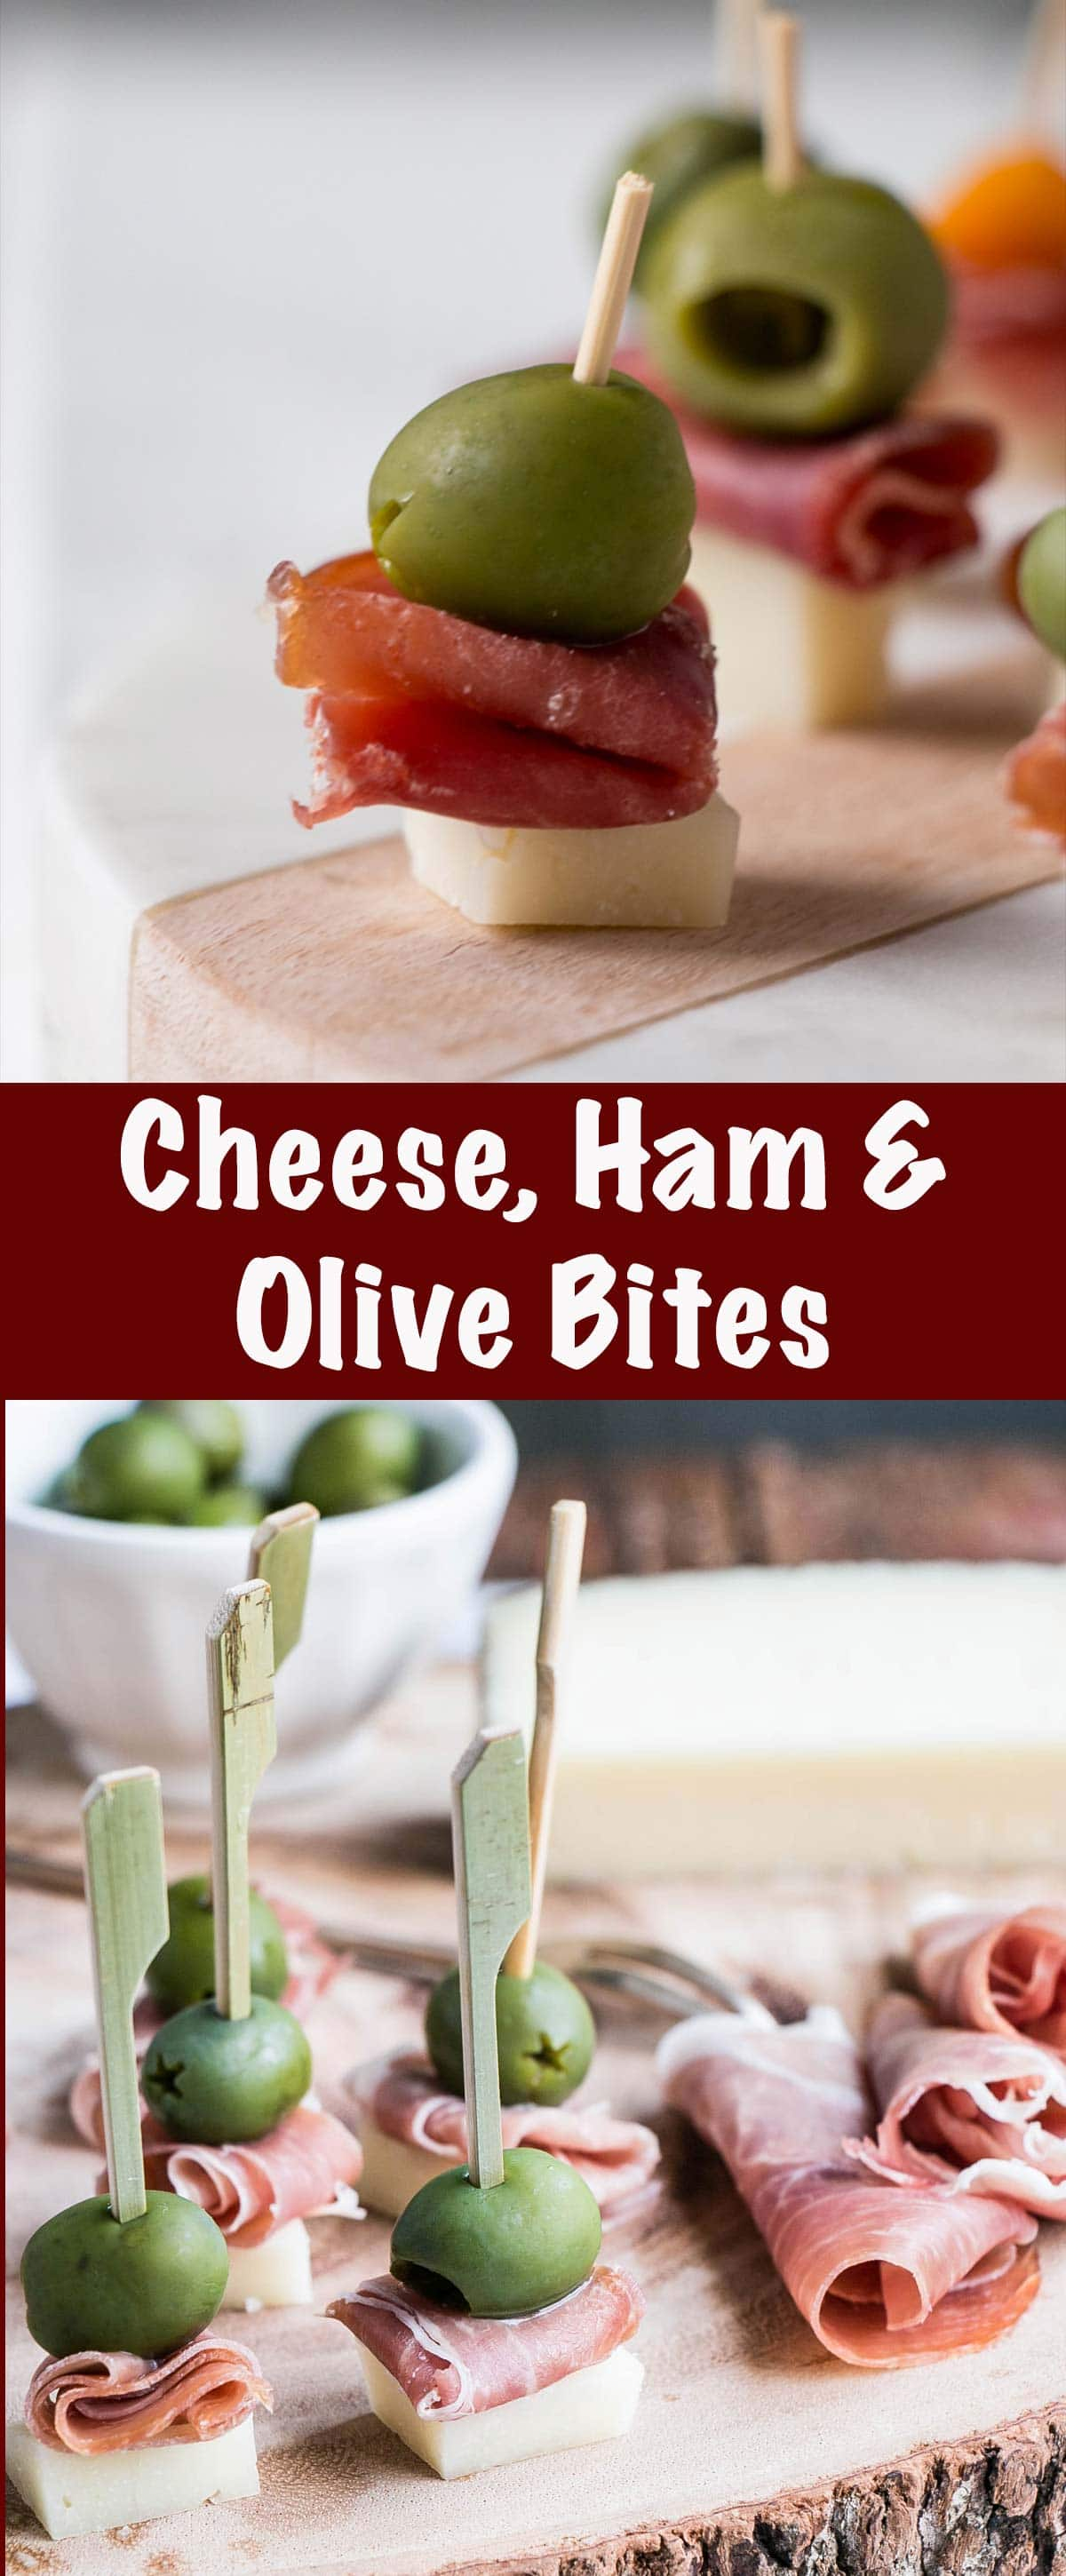 Cheese, Ham and Olive Bites Pin